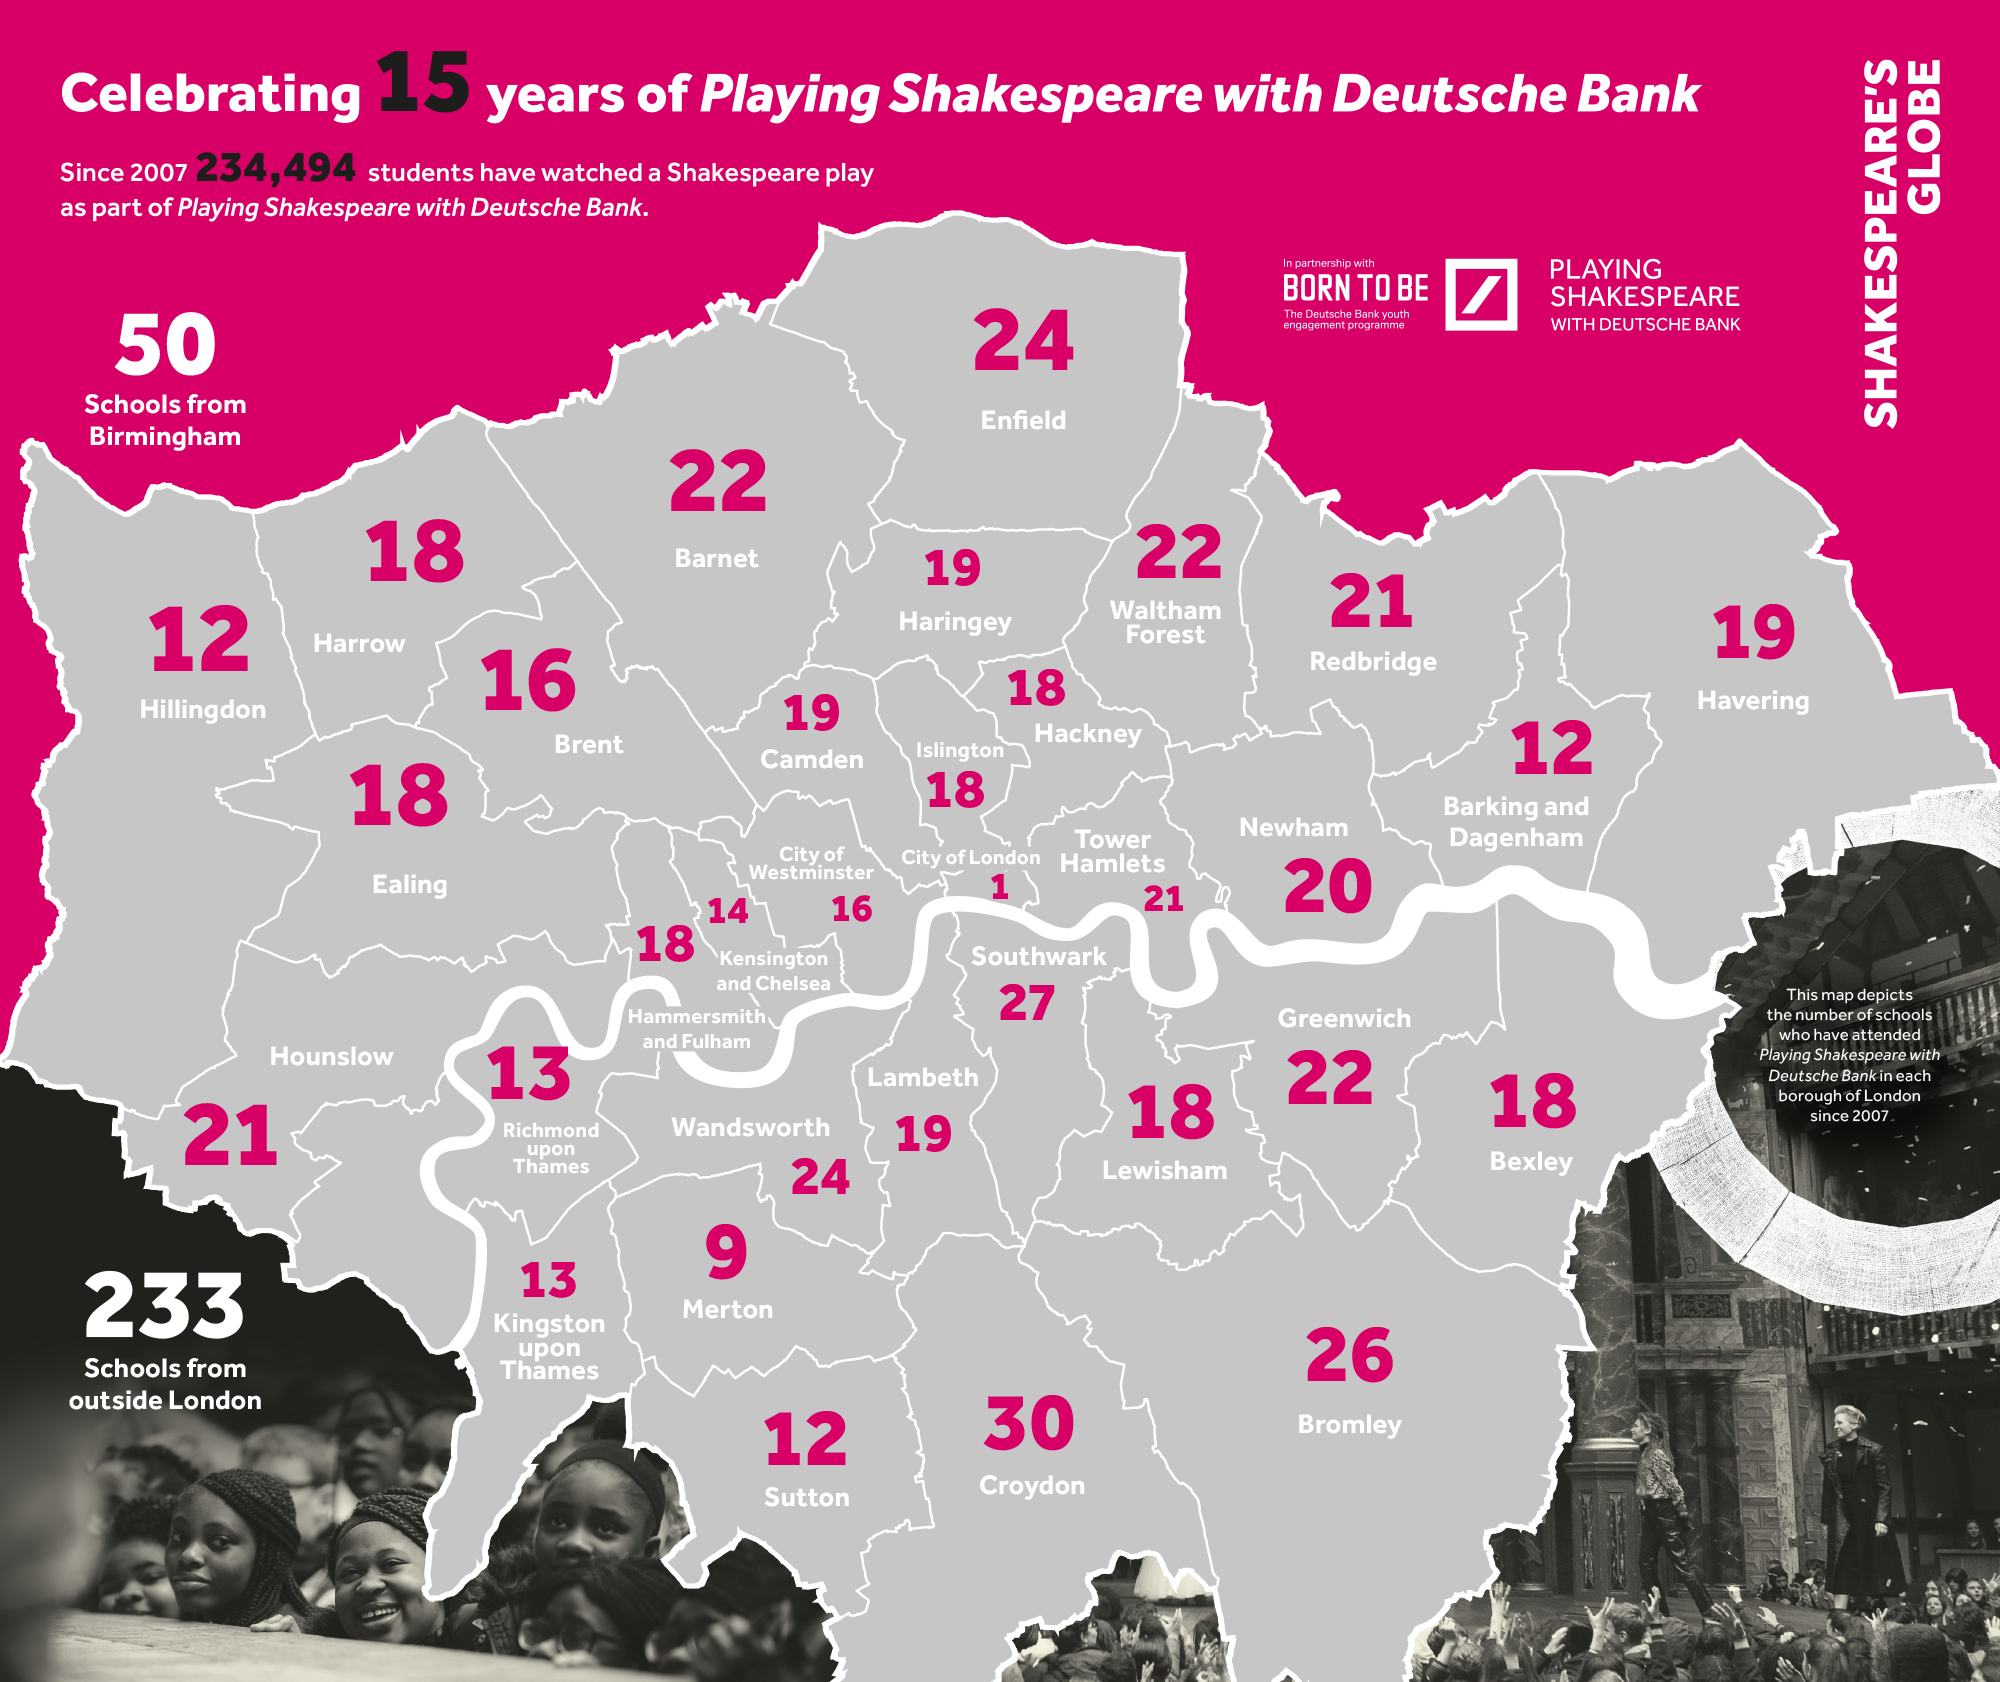 A pink map of the Boroughs in London, specifying the numbers of schools who have attended a Playing Shakespeare with Deutsche Bank performance. The map also lists 233 schools from outside London, and 234,494 students have watched a Shakespeare play at the Globe Theatre since 2007.